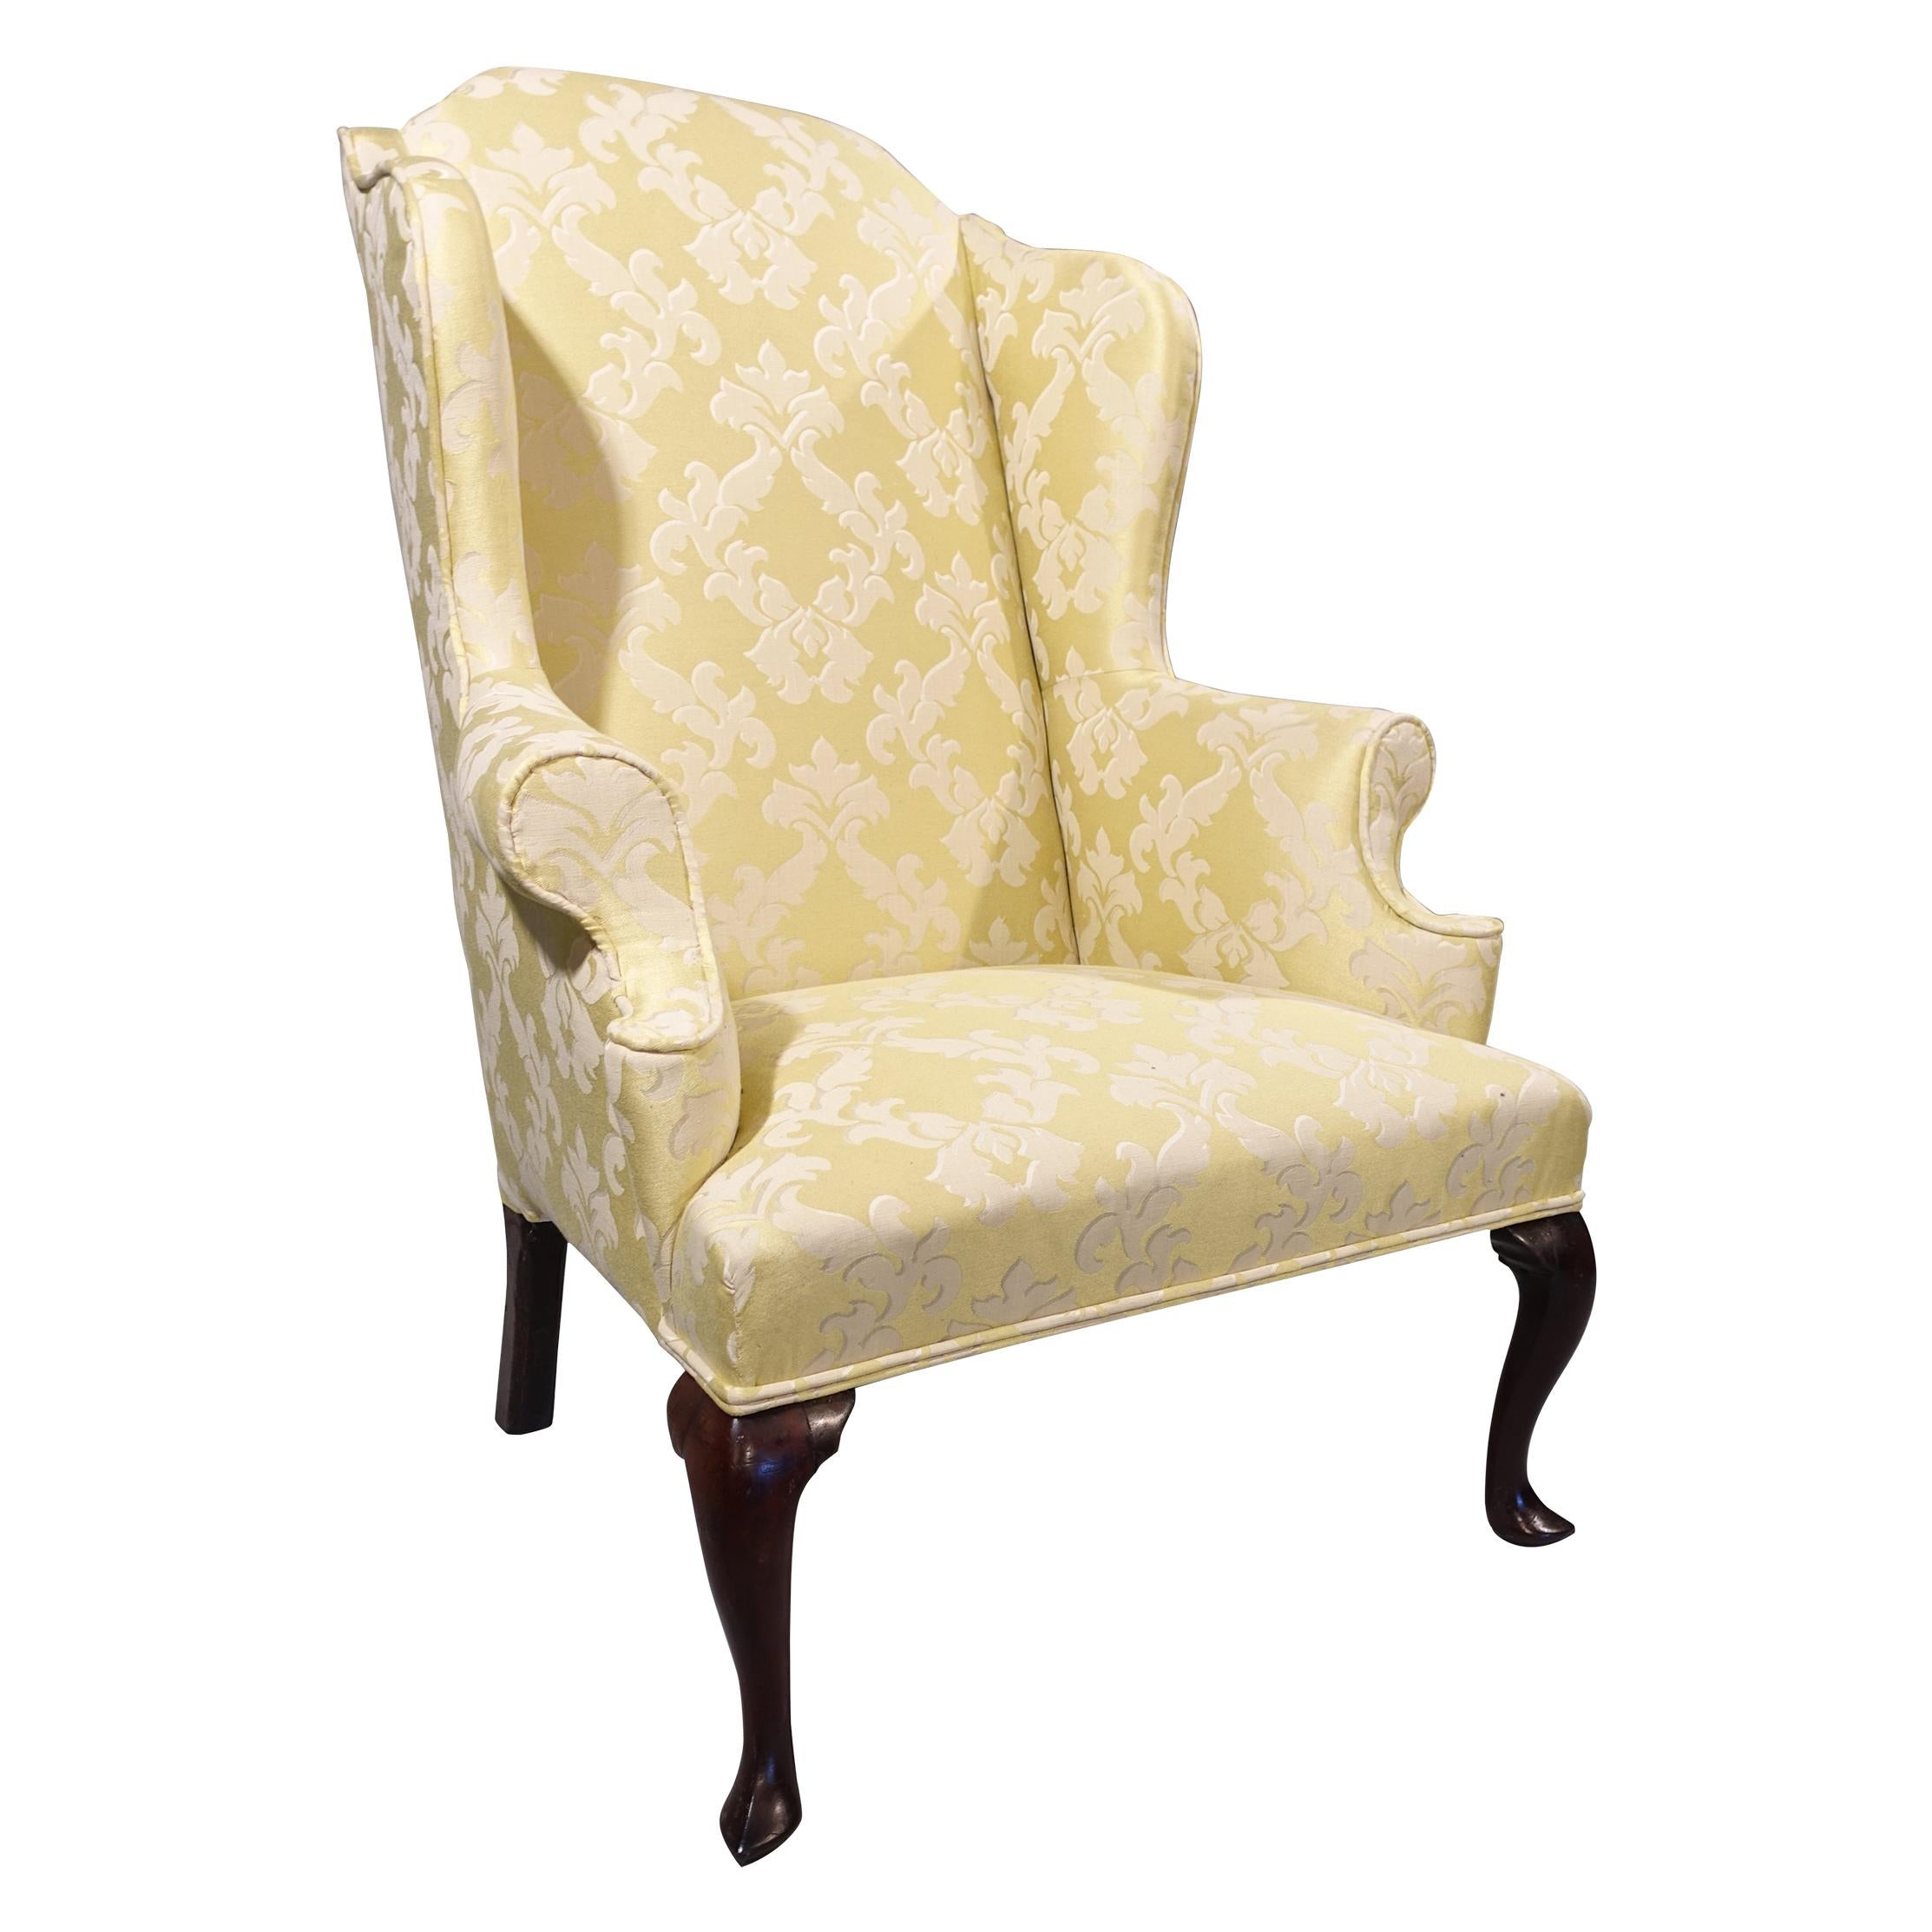 Most Shapely Mid-20th Century Queen Anne Designed Walnut Framed Wing Chair